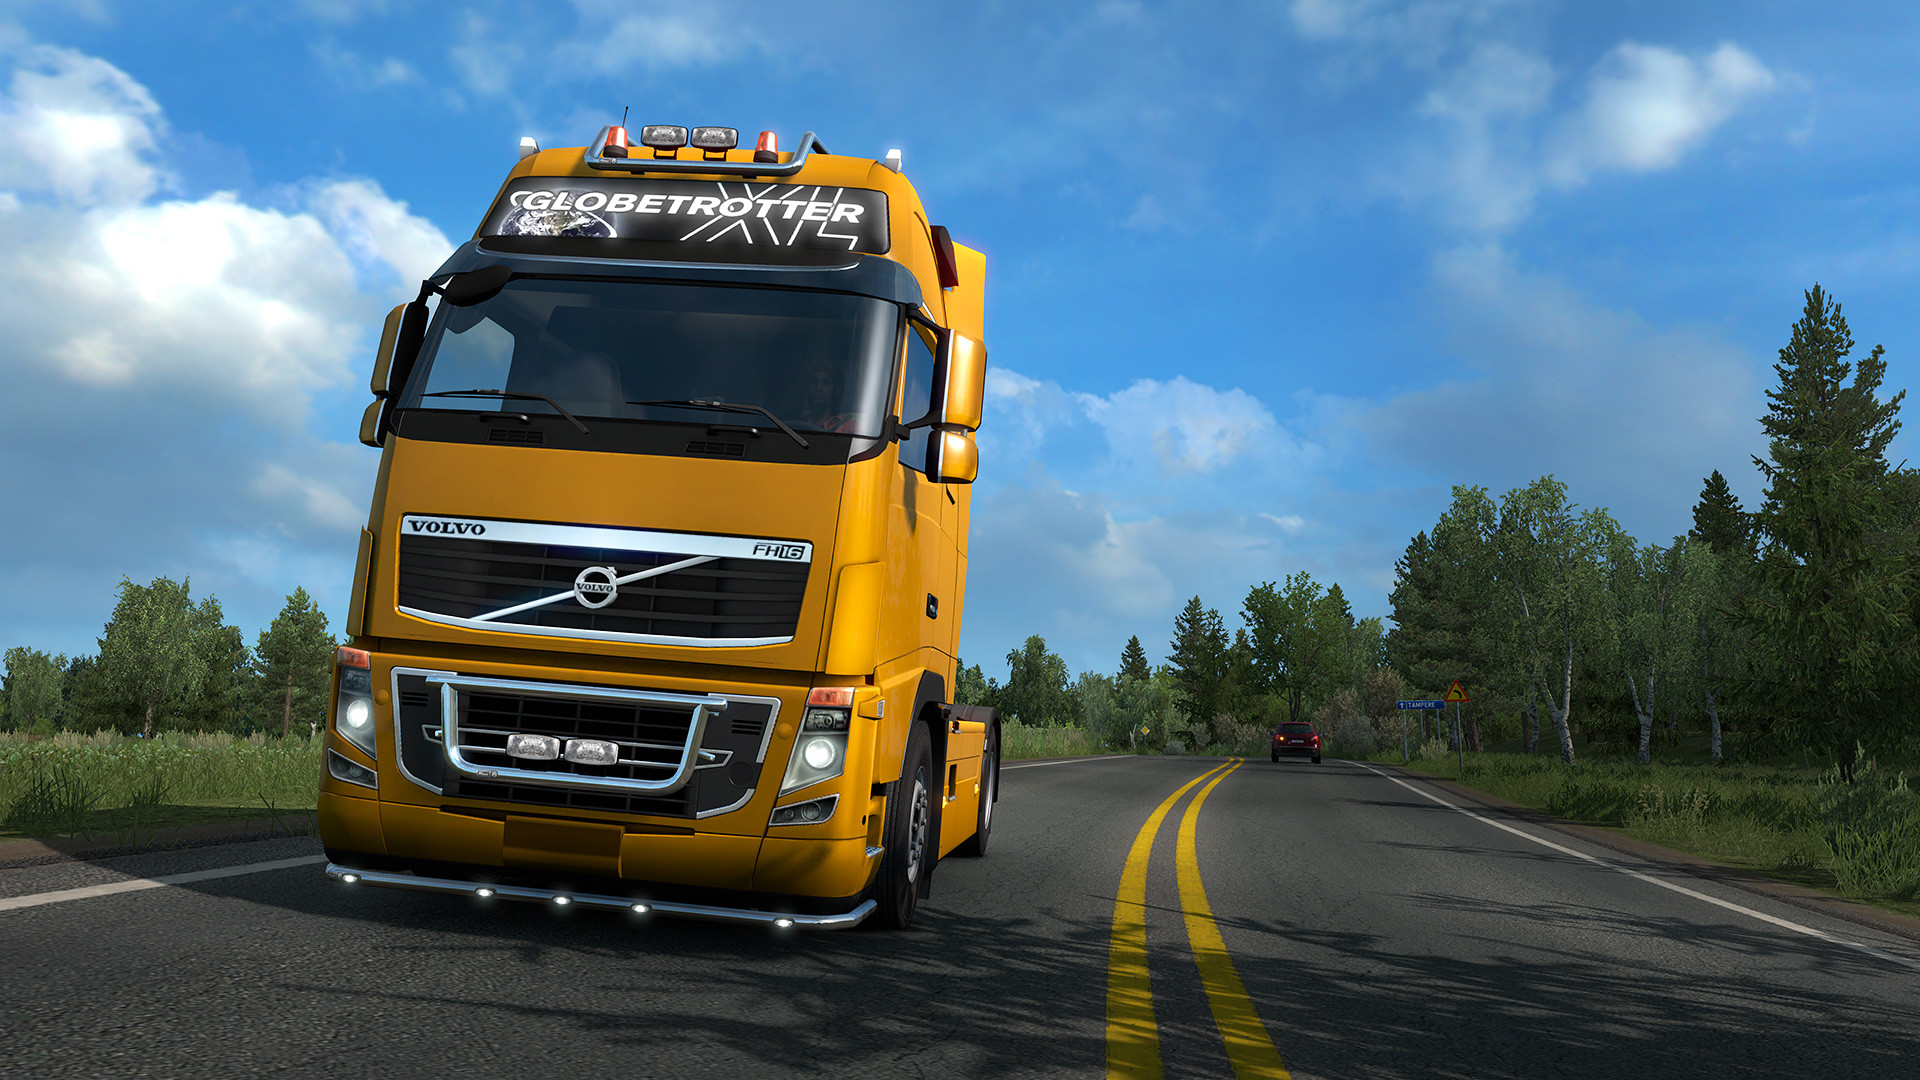 Euro truck simulator 2 - fh tuning pack download for macbook pro